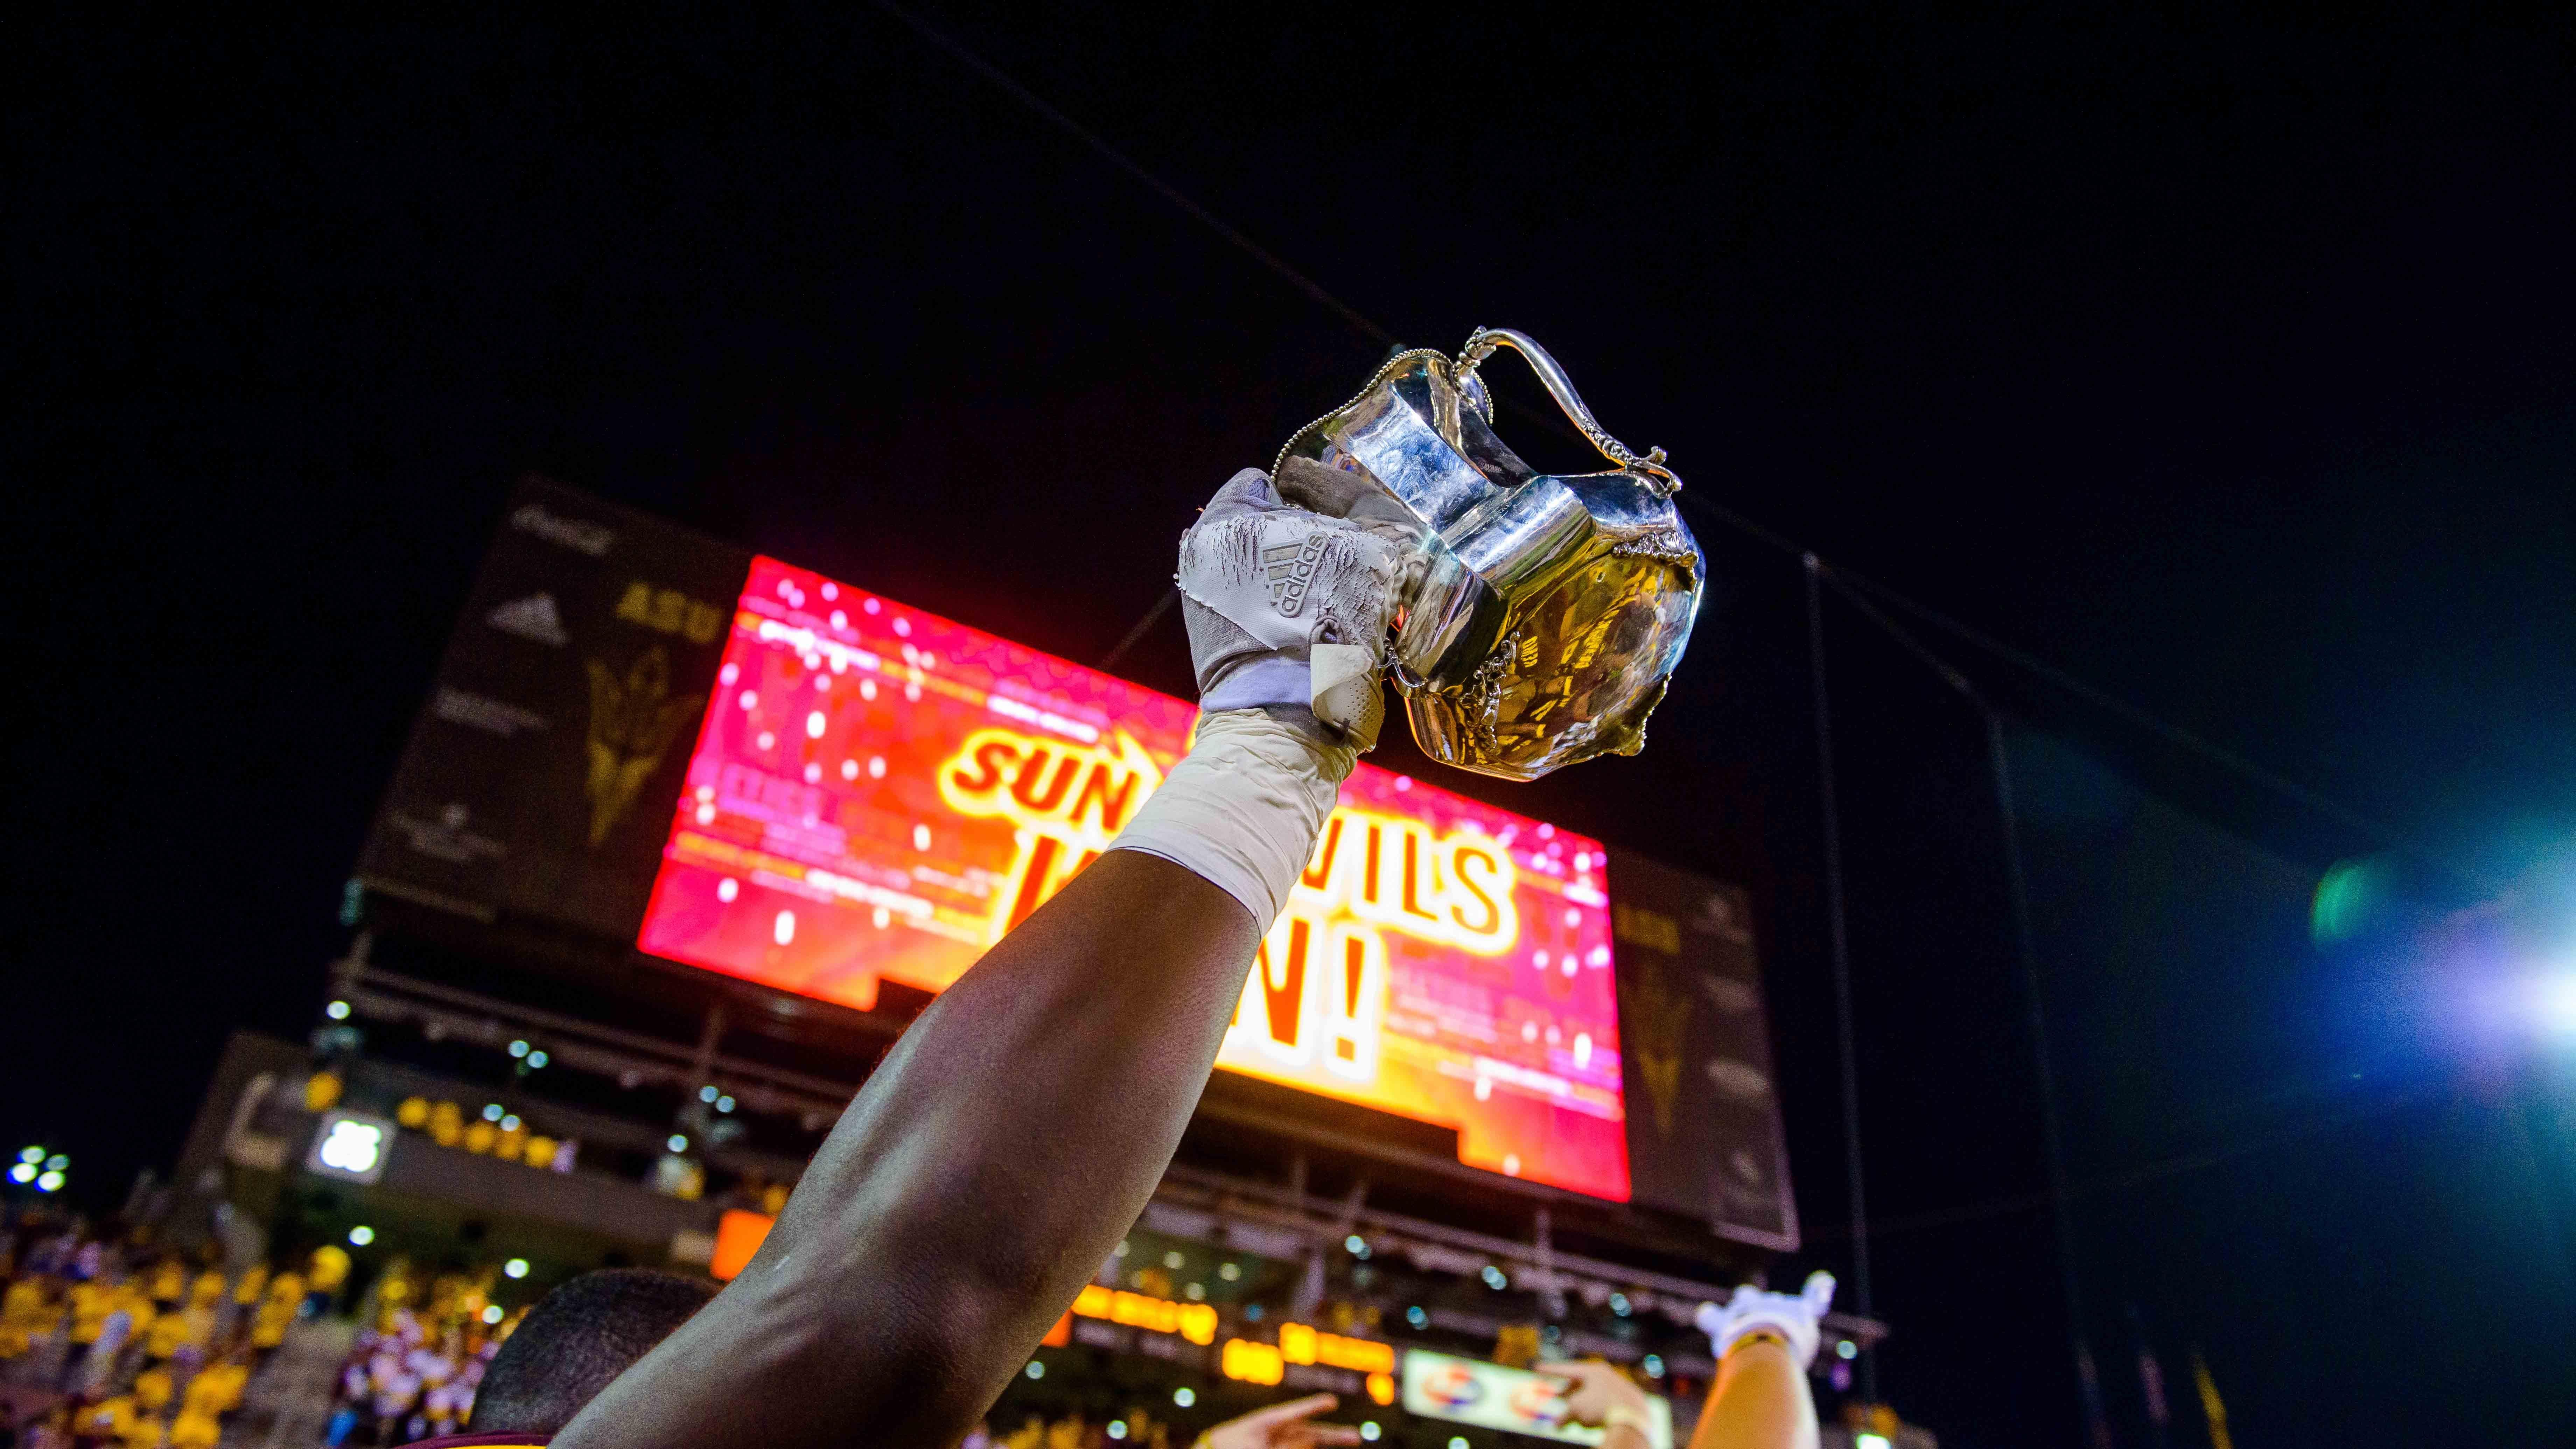 2018 Sun Devils win the Territorial Cup against U of A Wildcats